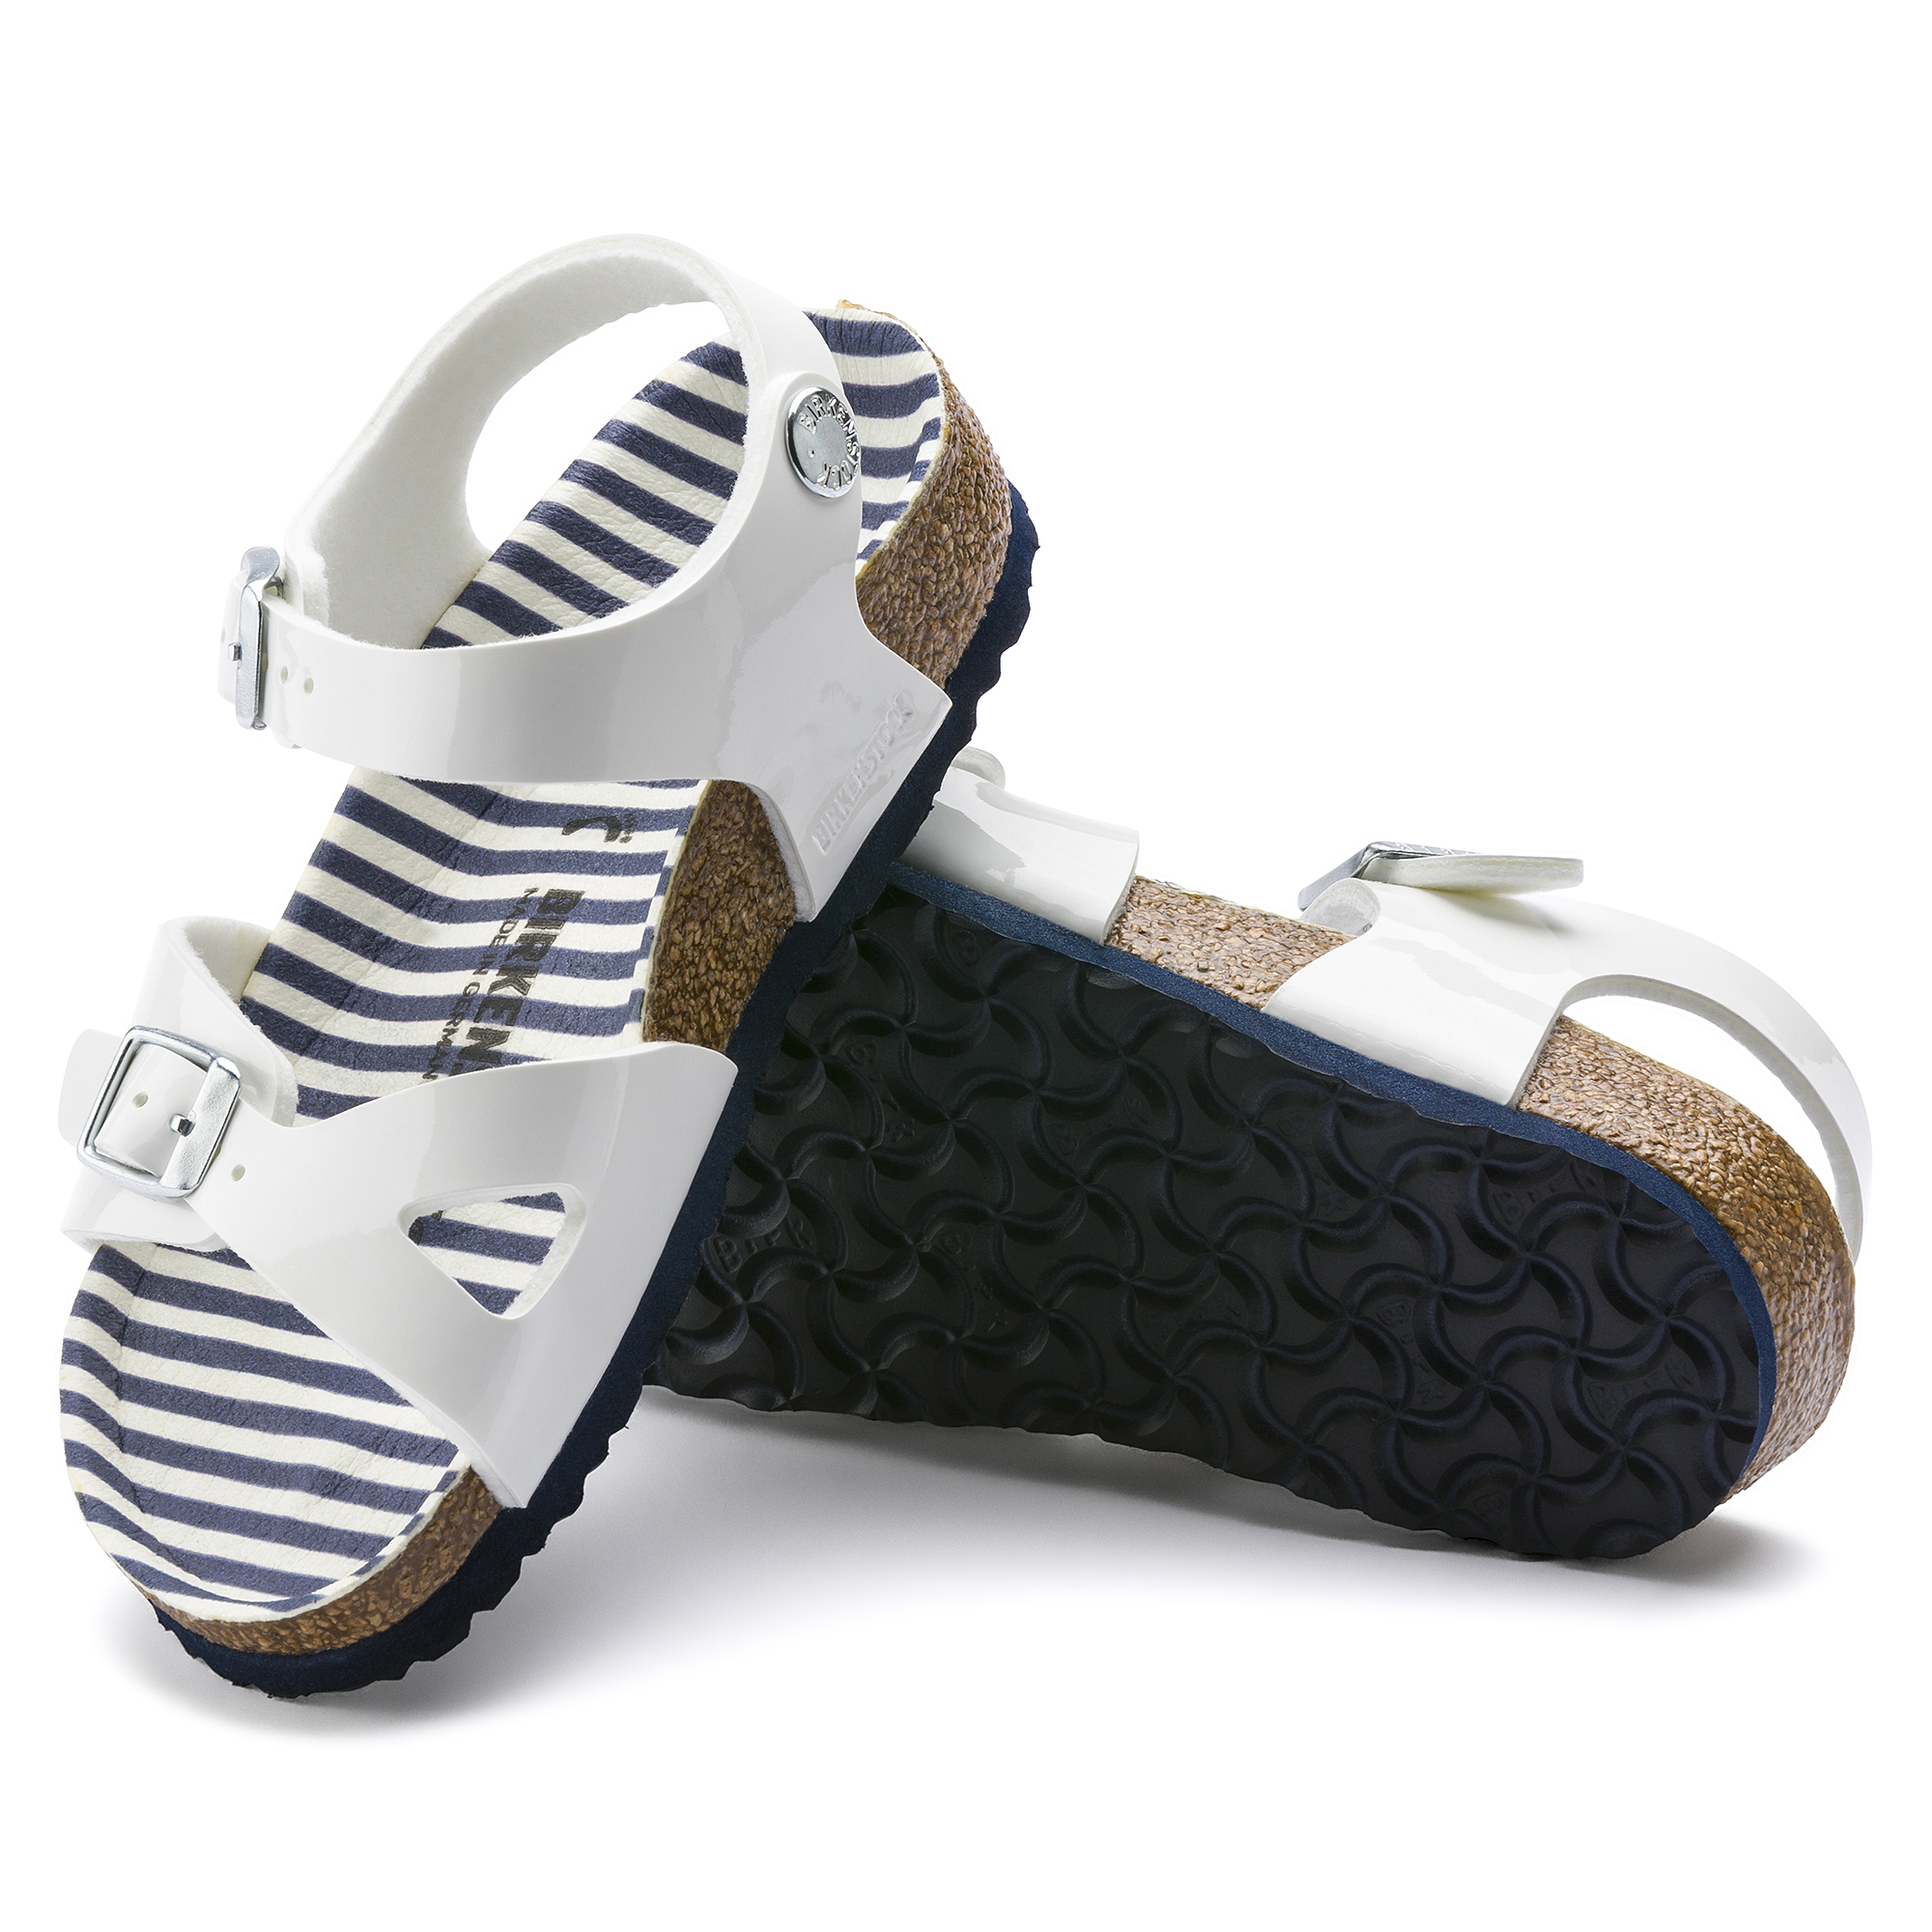 Birkenstock Kids Rio Birko Flor Narrow Fit Sandal (Nautical Stripes White, Size 28 EU) | Shoes |